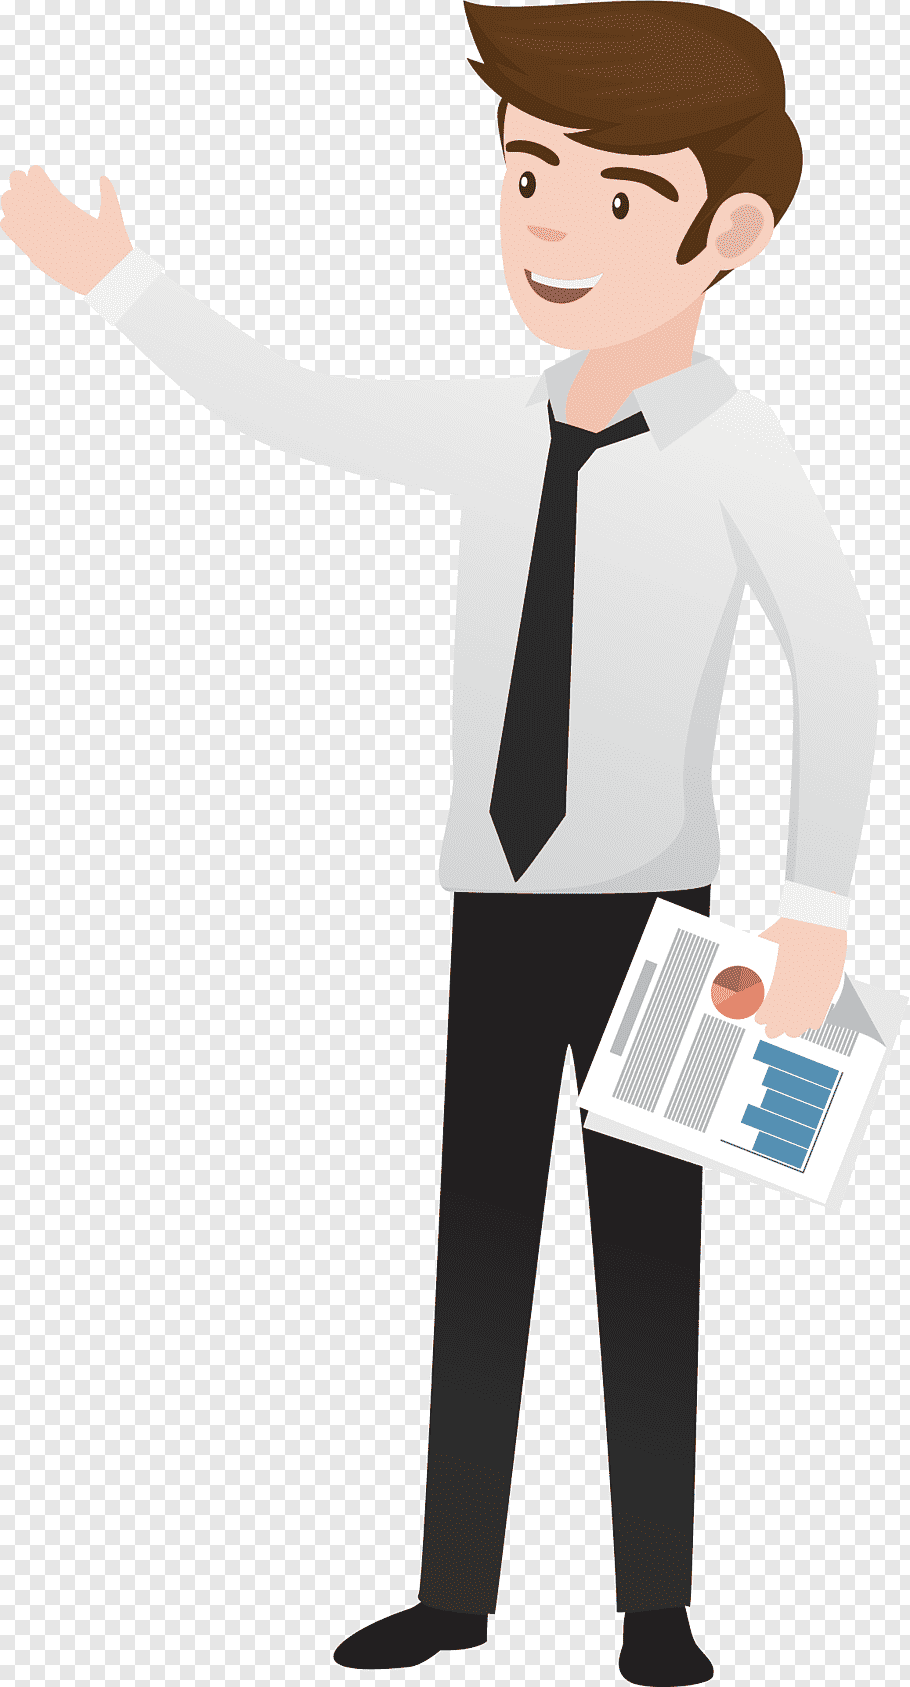 Man in white dress shirt, Kinh doanh Business Accounting.